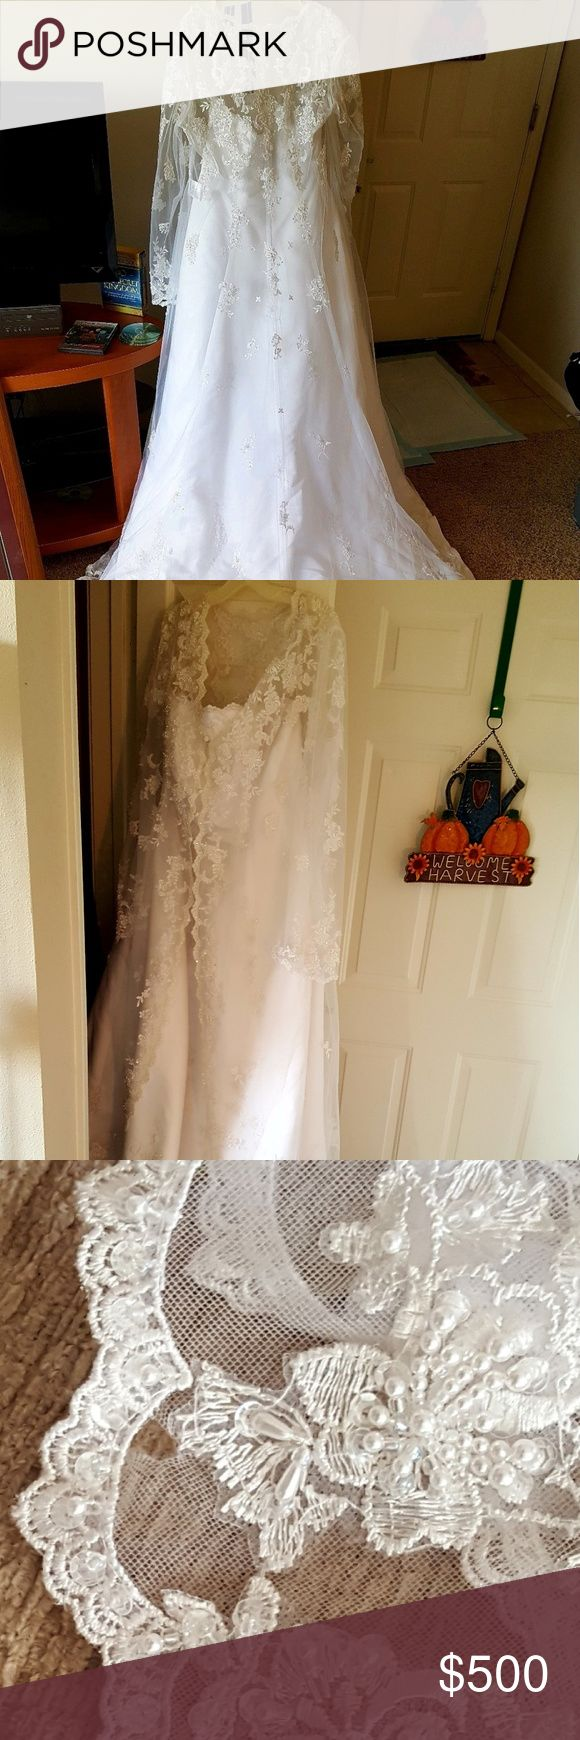 "STUNNING, WHITE, PLUS SIZE/18W, WEDDING DRESS! PLUS SIZE, DAVID'S BRIDAL, WHITE WEDDING DRESS, 18W, ""NEW"" SMALL TEAR ON THE SLEEVE.  NEEDS TO BE CLEANED HAS ONLY BEEN IN GARMENT BAG! David's Bridal Dresses Wedding"